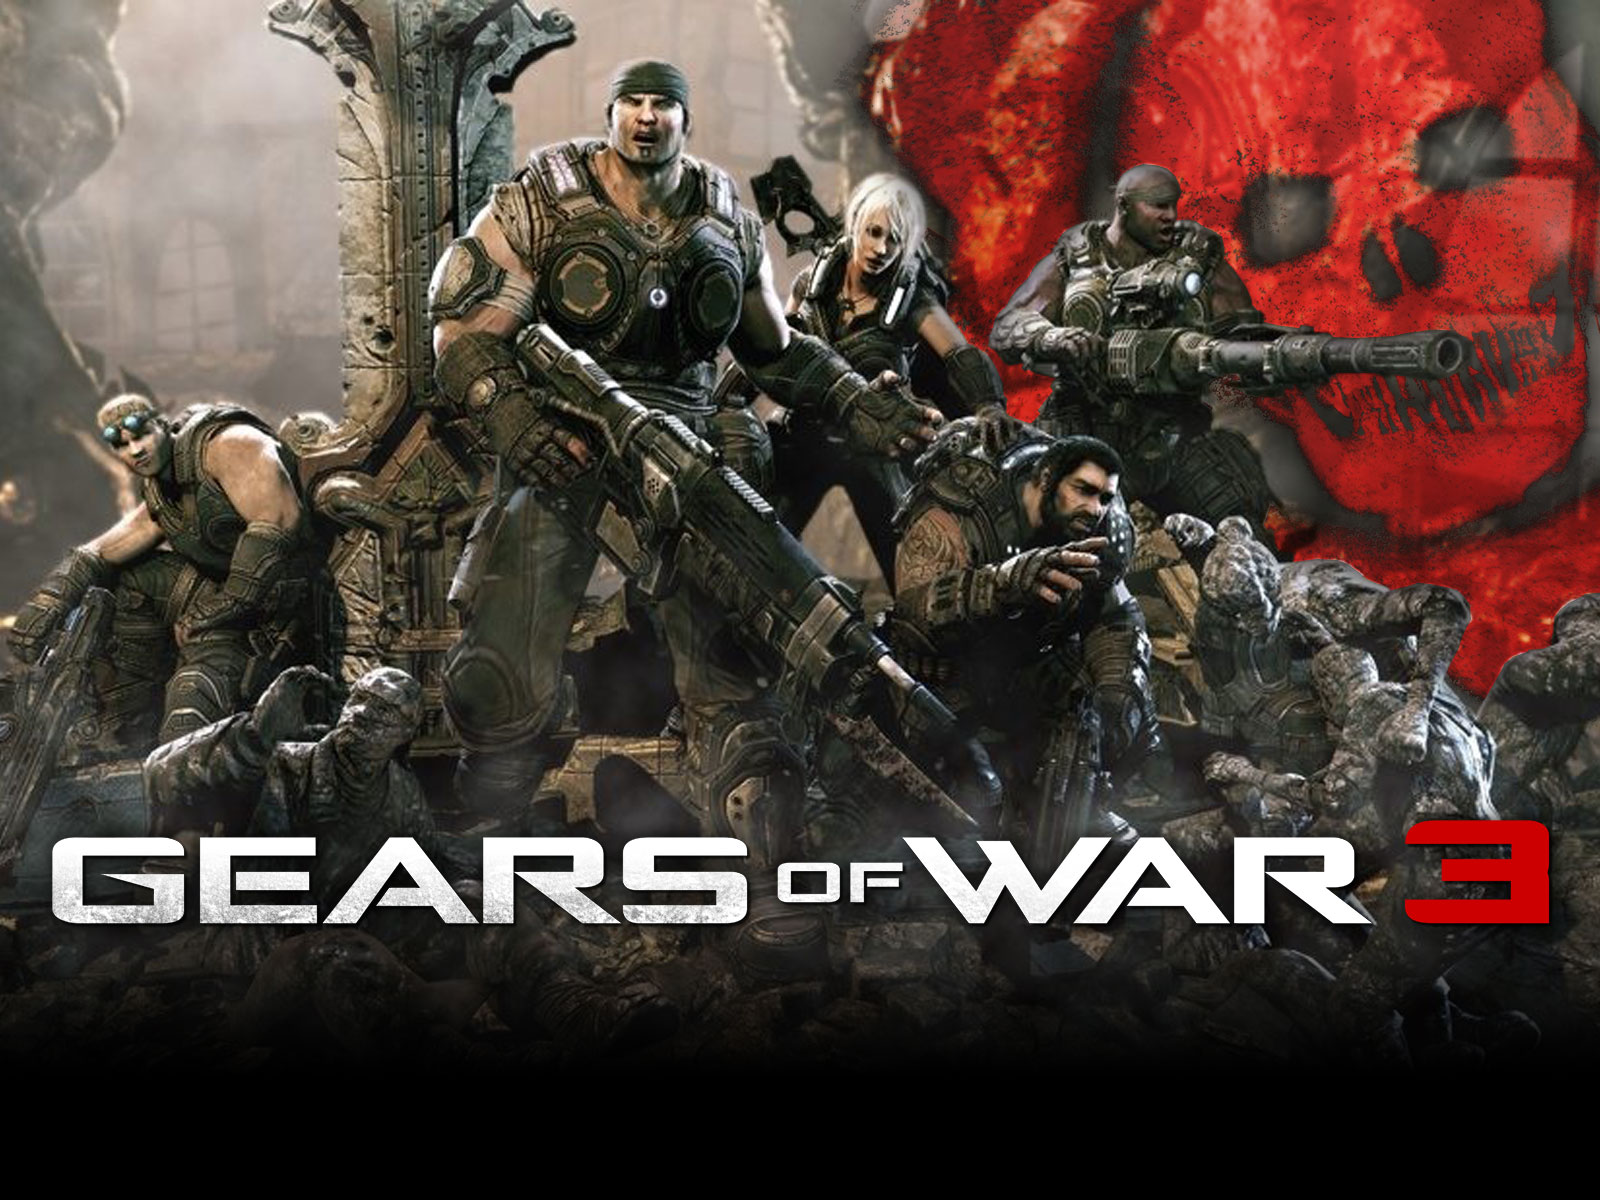 gears of war wallpaper | 1600x1200 | #67527